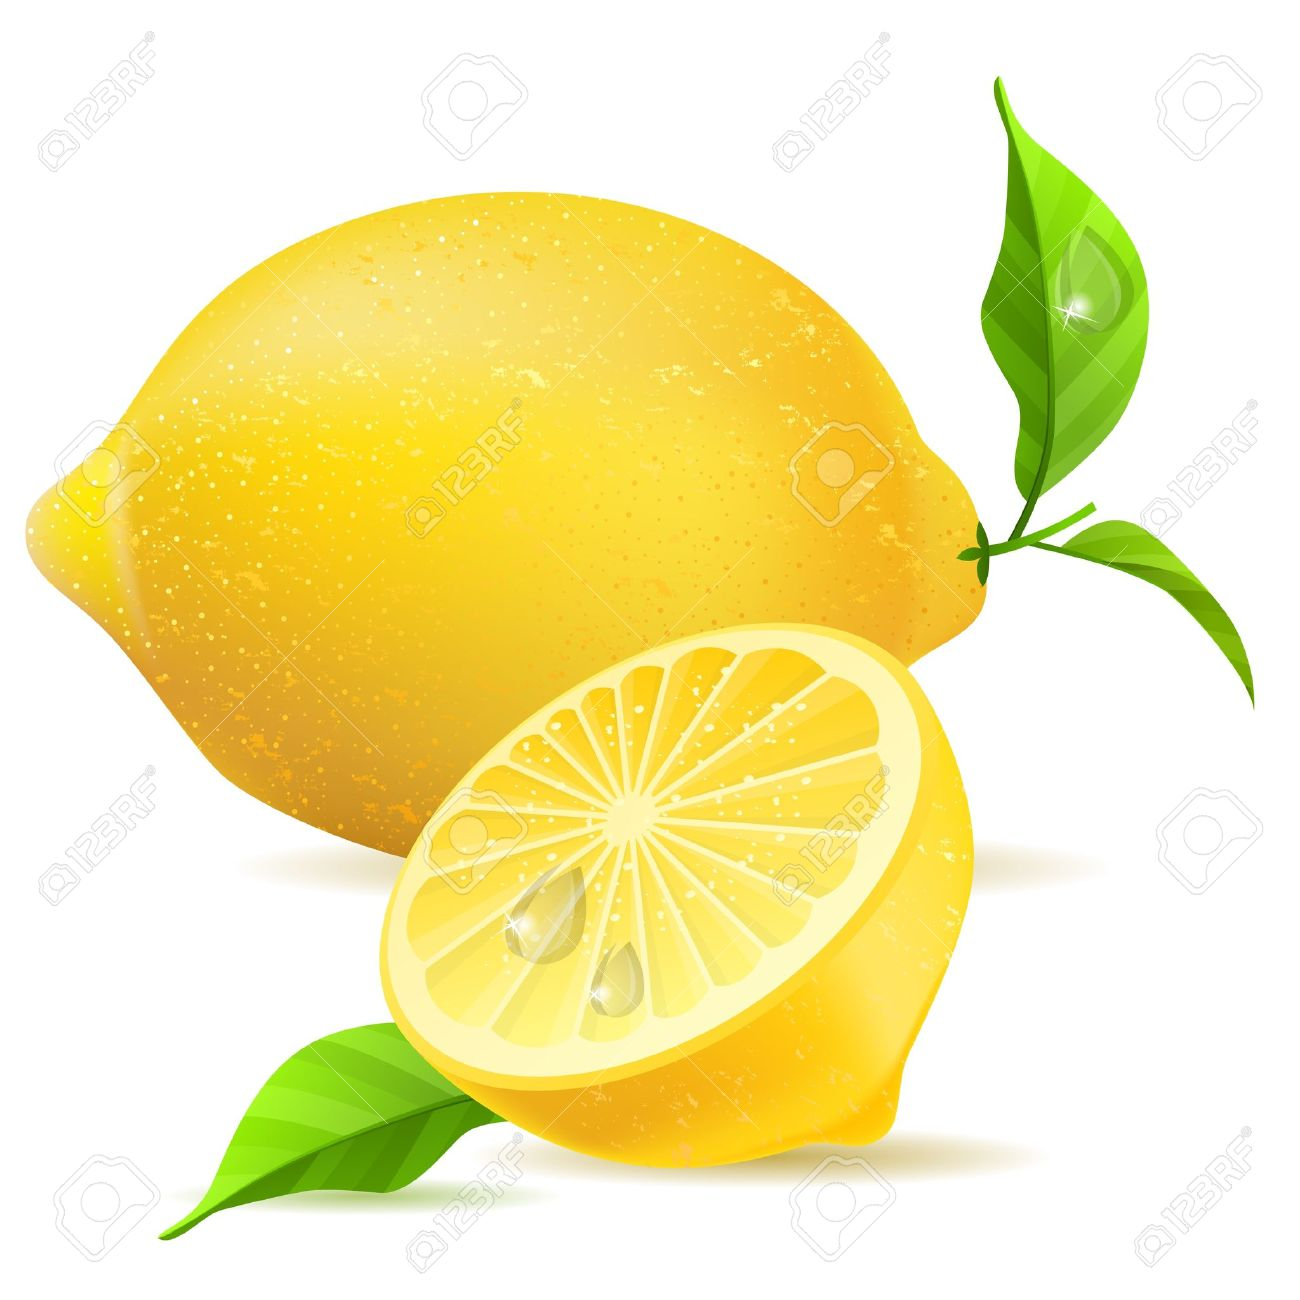 lemon clipart clipart panda free clipart images rh clipartpanda com lemon clipart vector free lemon clipart black and white